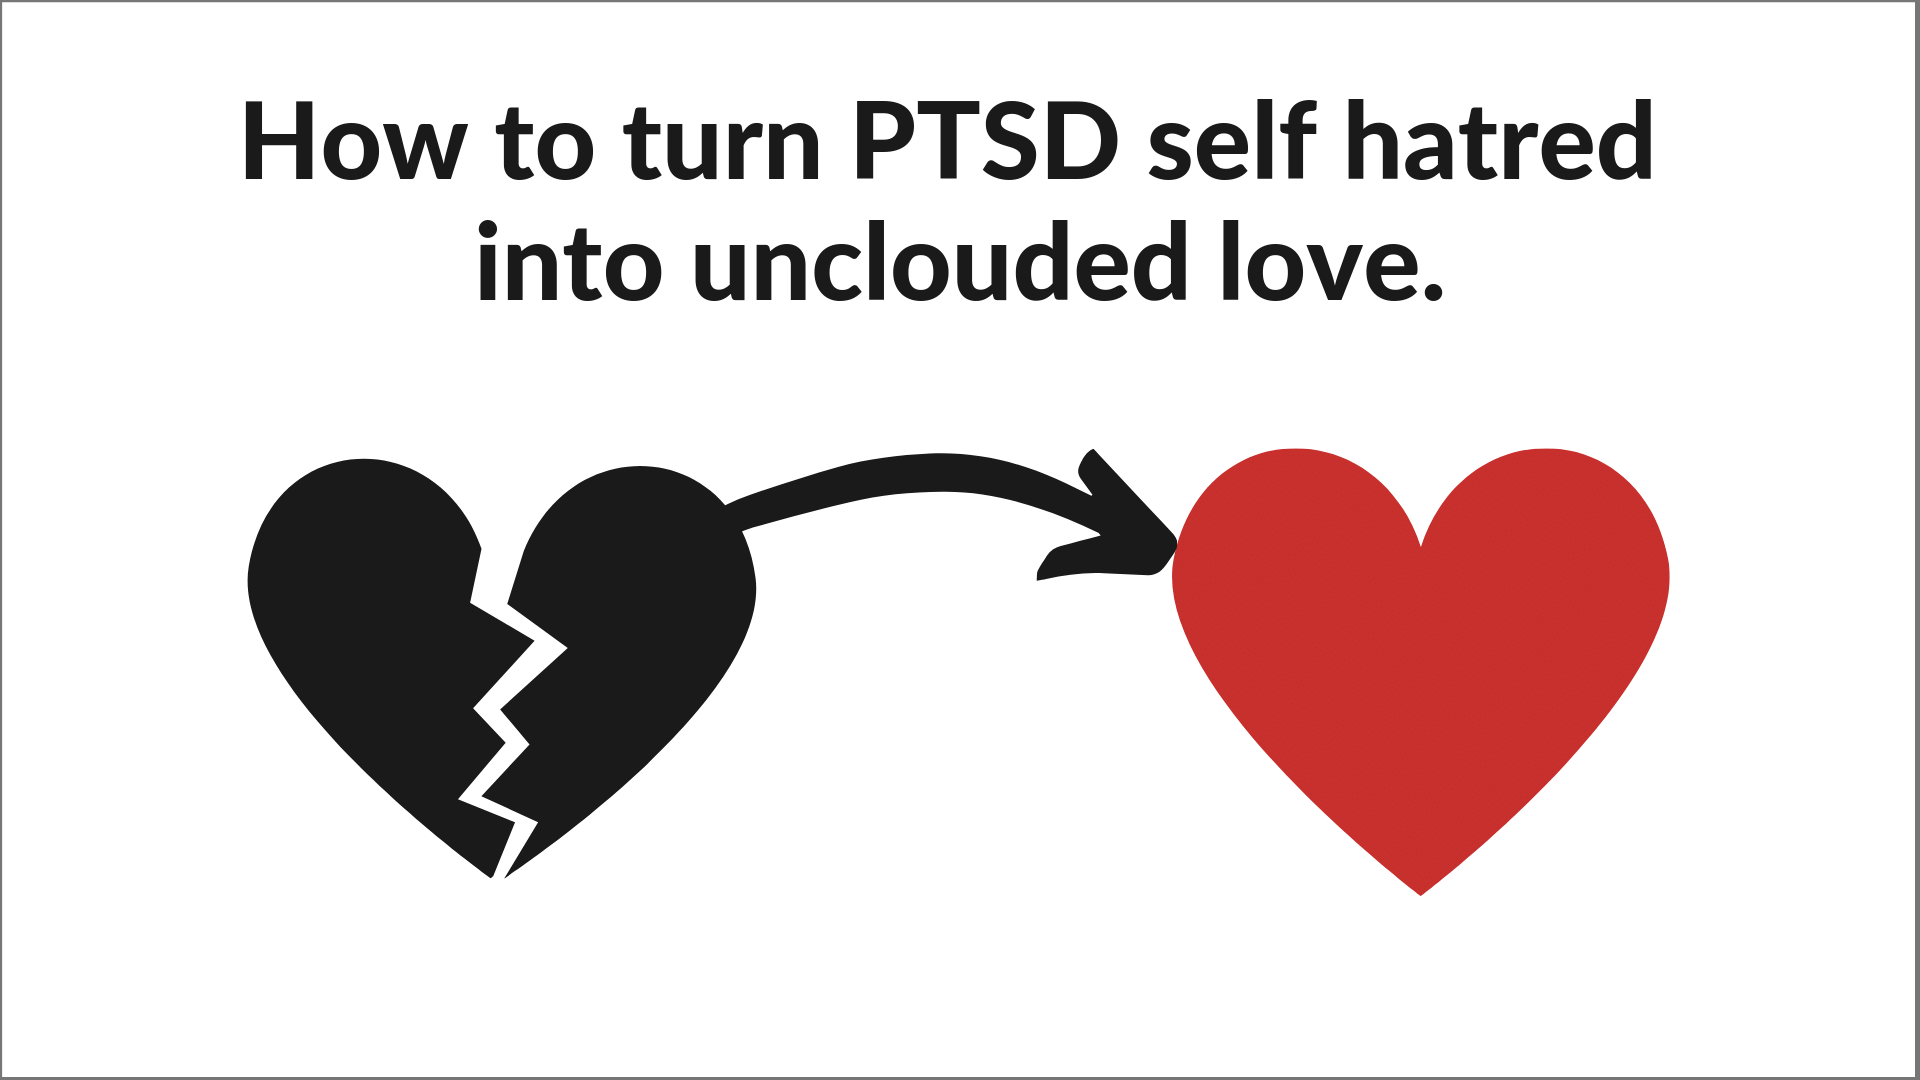 How To Transform PTSD Self Hatred Into Unclouded Love